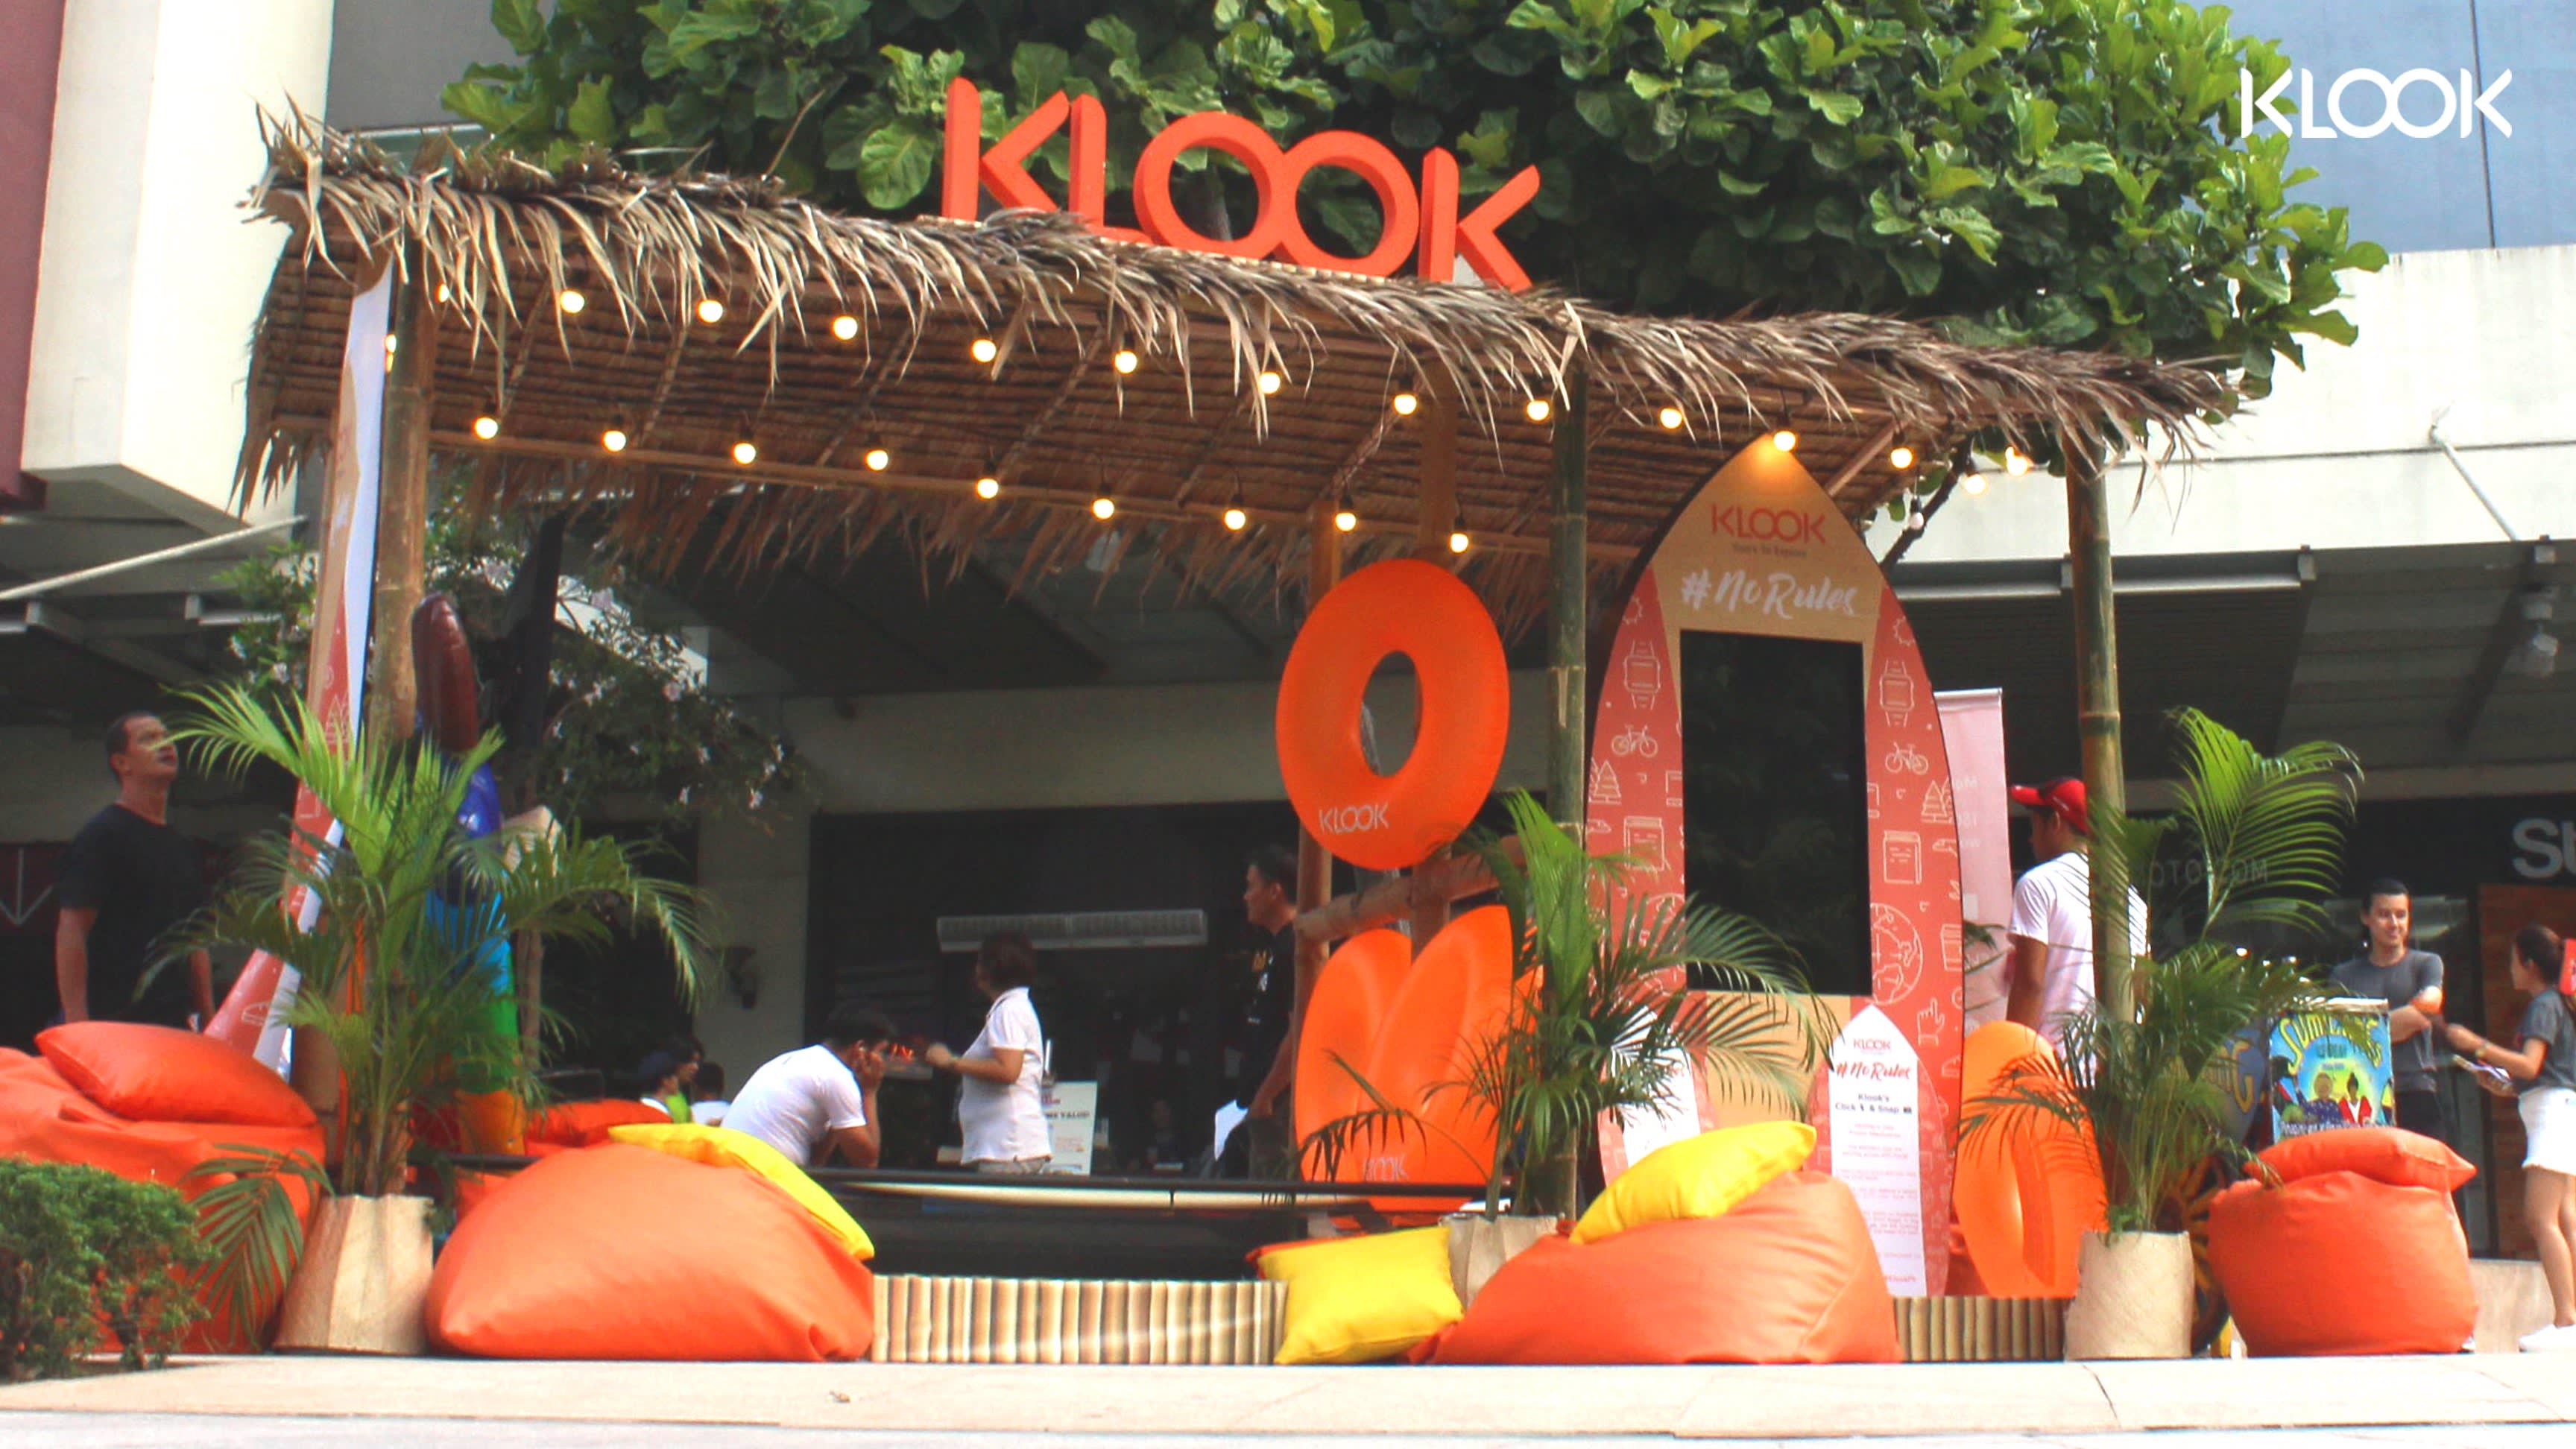 klook beach hut travel vouchers